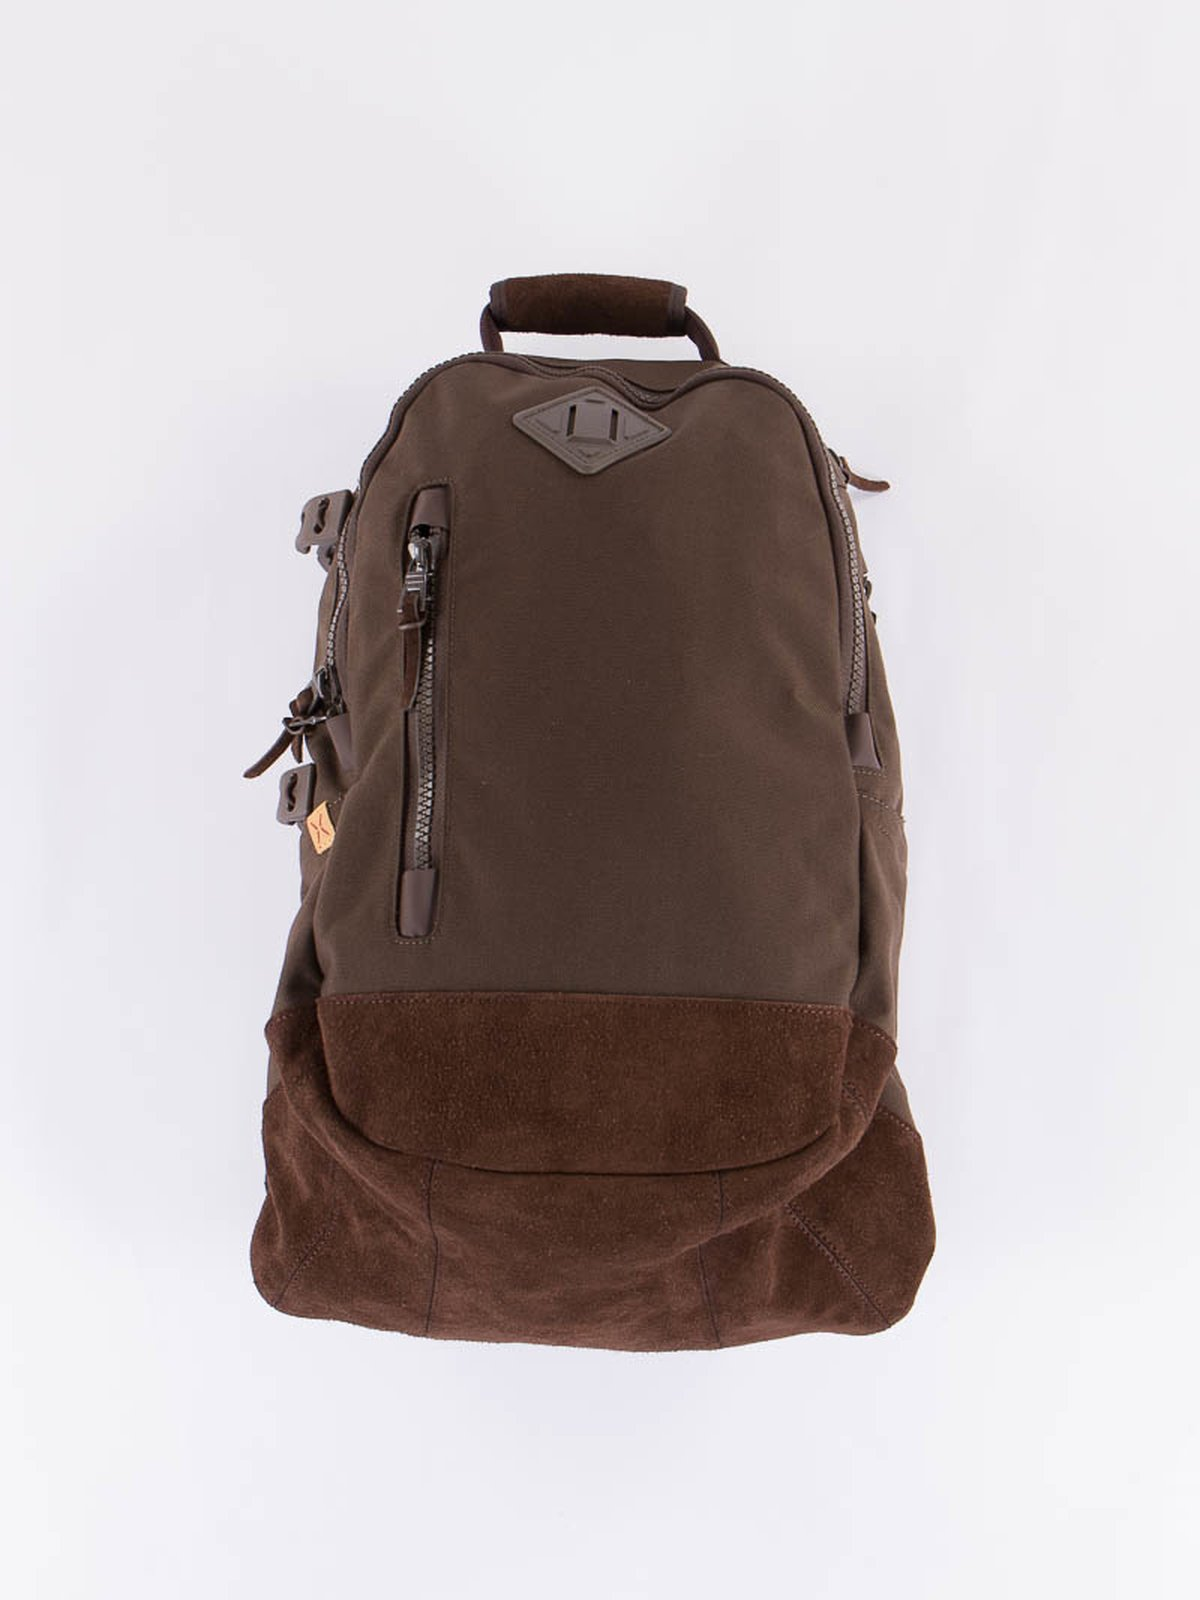 Brown 20L Ballistic Backpack - Image 1